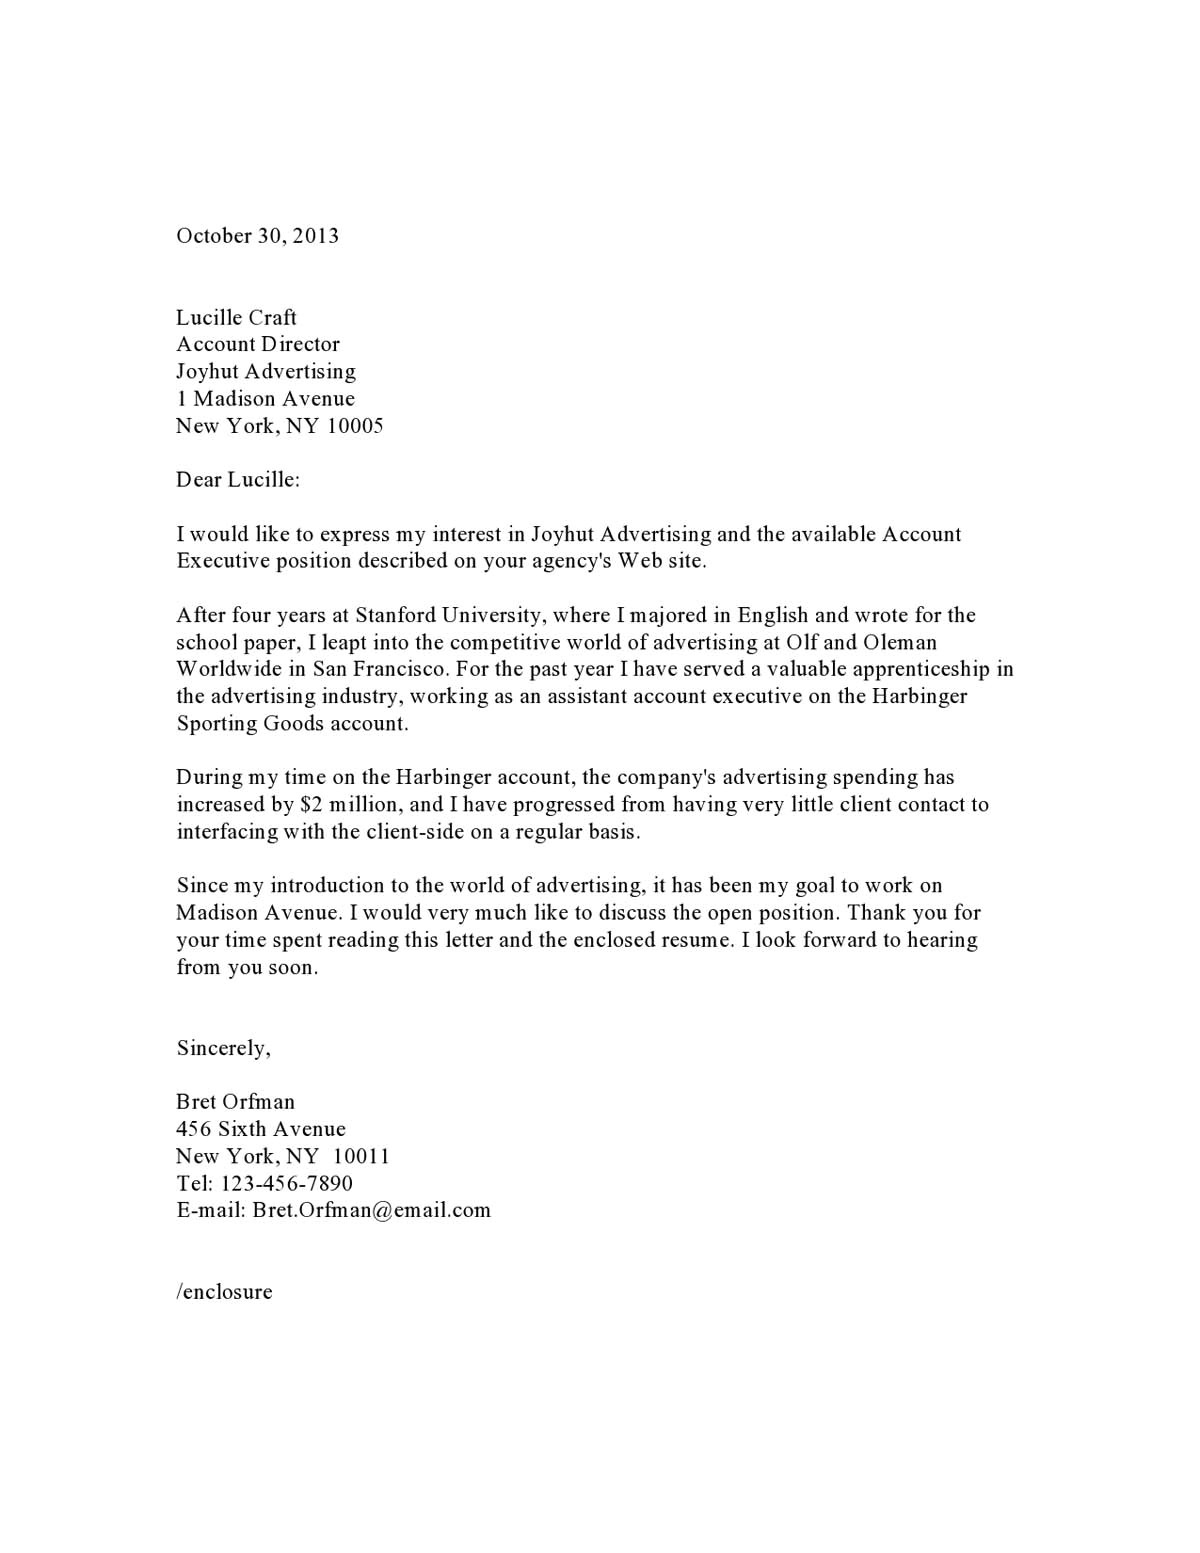 Free Sample Cover Letter Templates Cover Letter Samples Download Free Cover Letter Templates